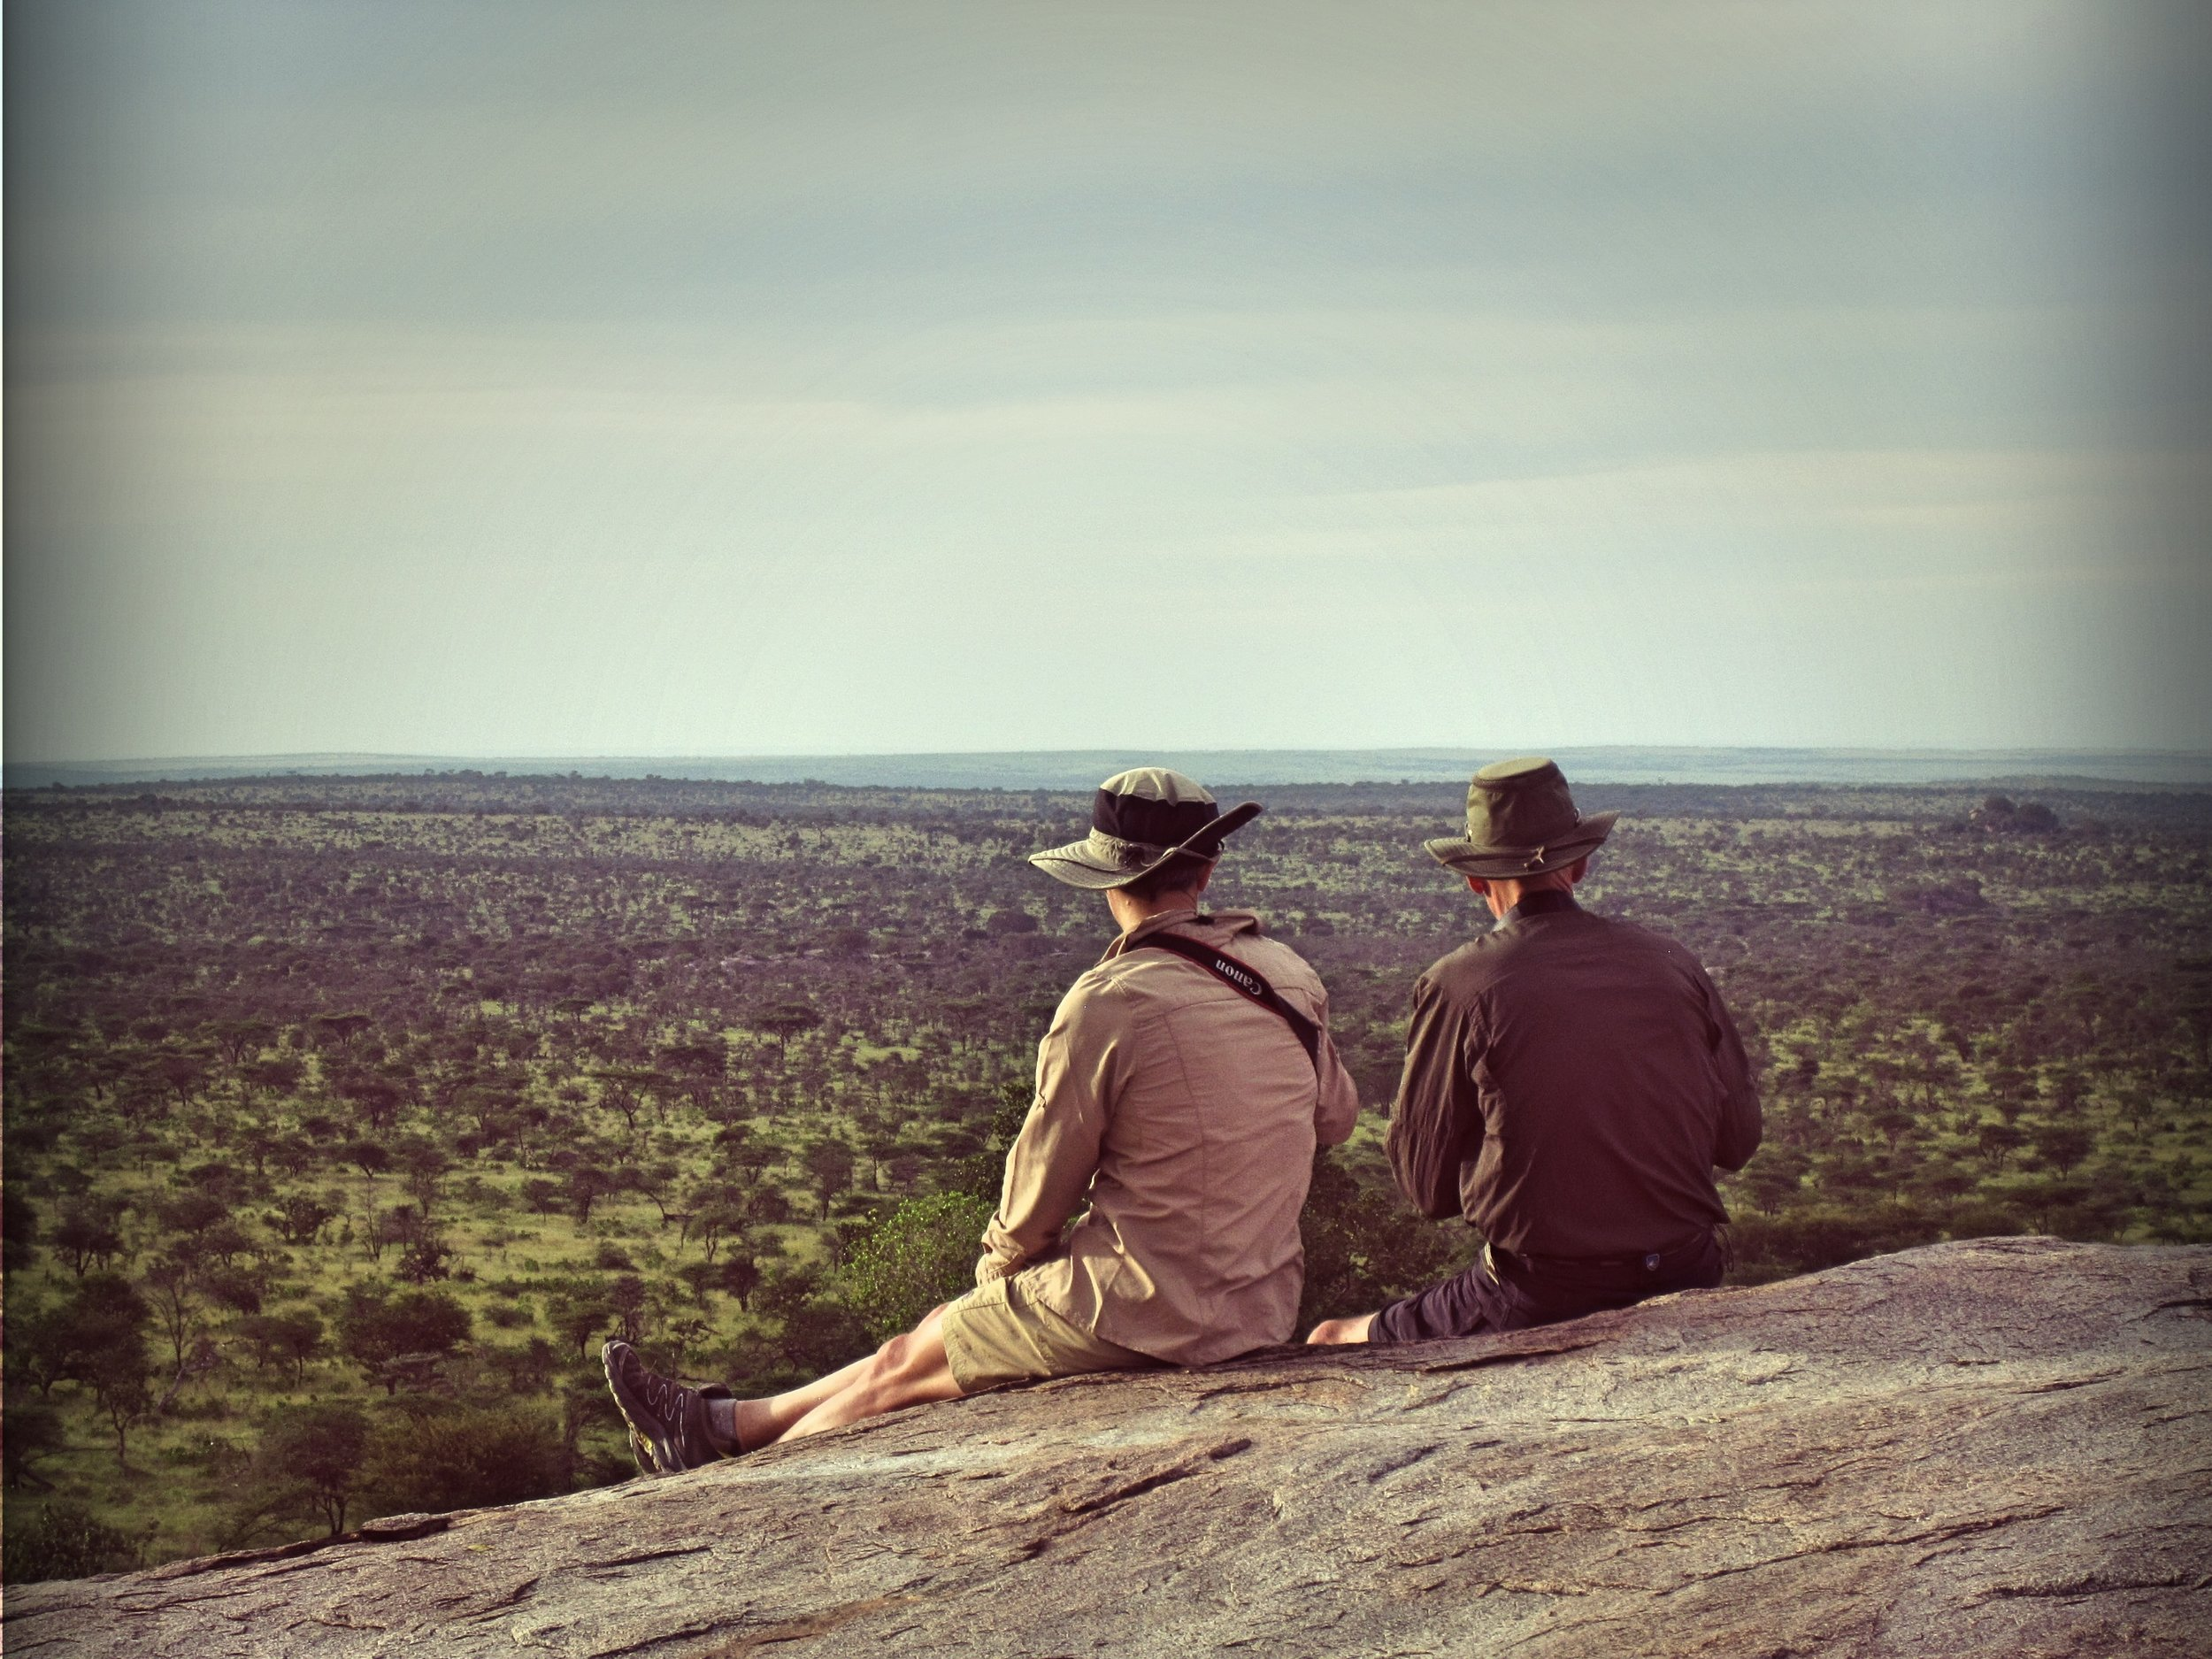 PRIvate - The true 'high-end' safari is not about luxury, but about experience, exclusivity and guiding. On this expedition, the camp, vehicles, guides (and entire wilderness!) are private to just your group. You are never mixed with other people. This is the way of the original safari.